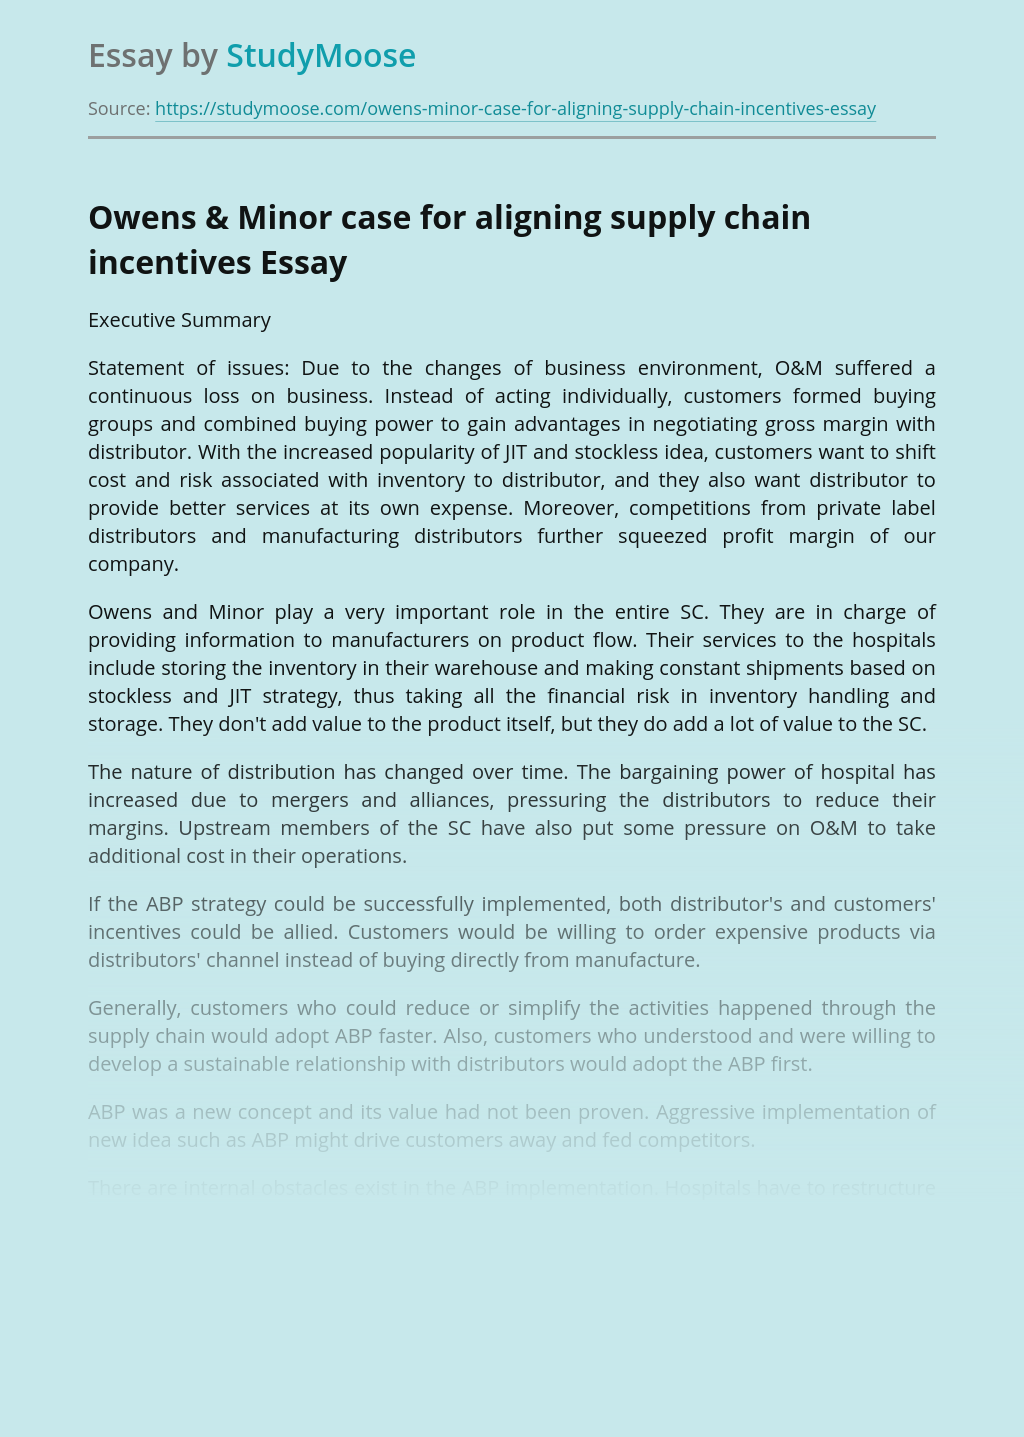 Owens & Minor Case For Aligning Supply Chain Incentives